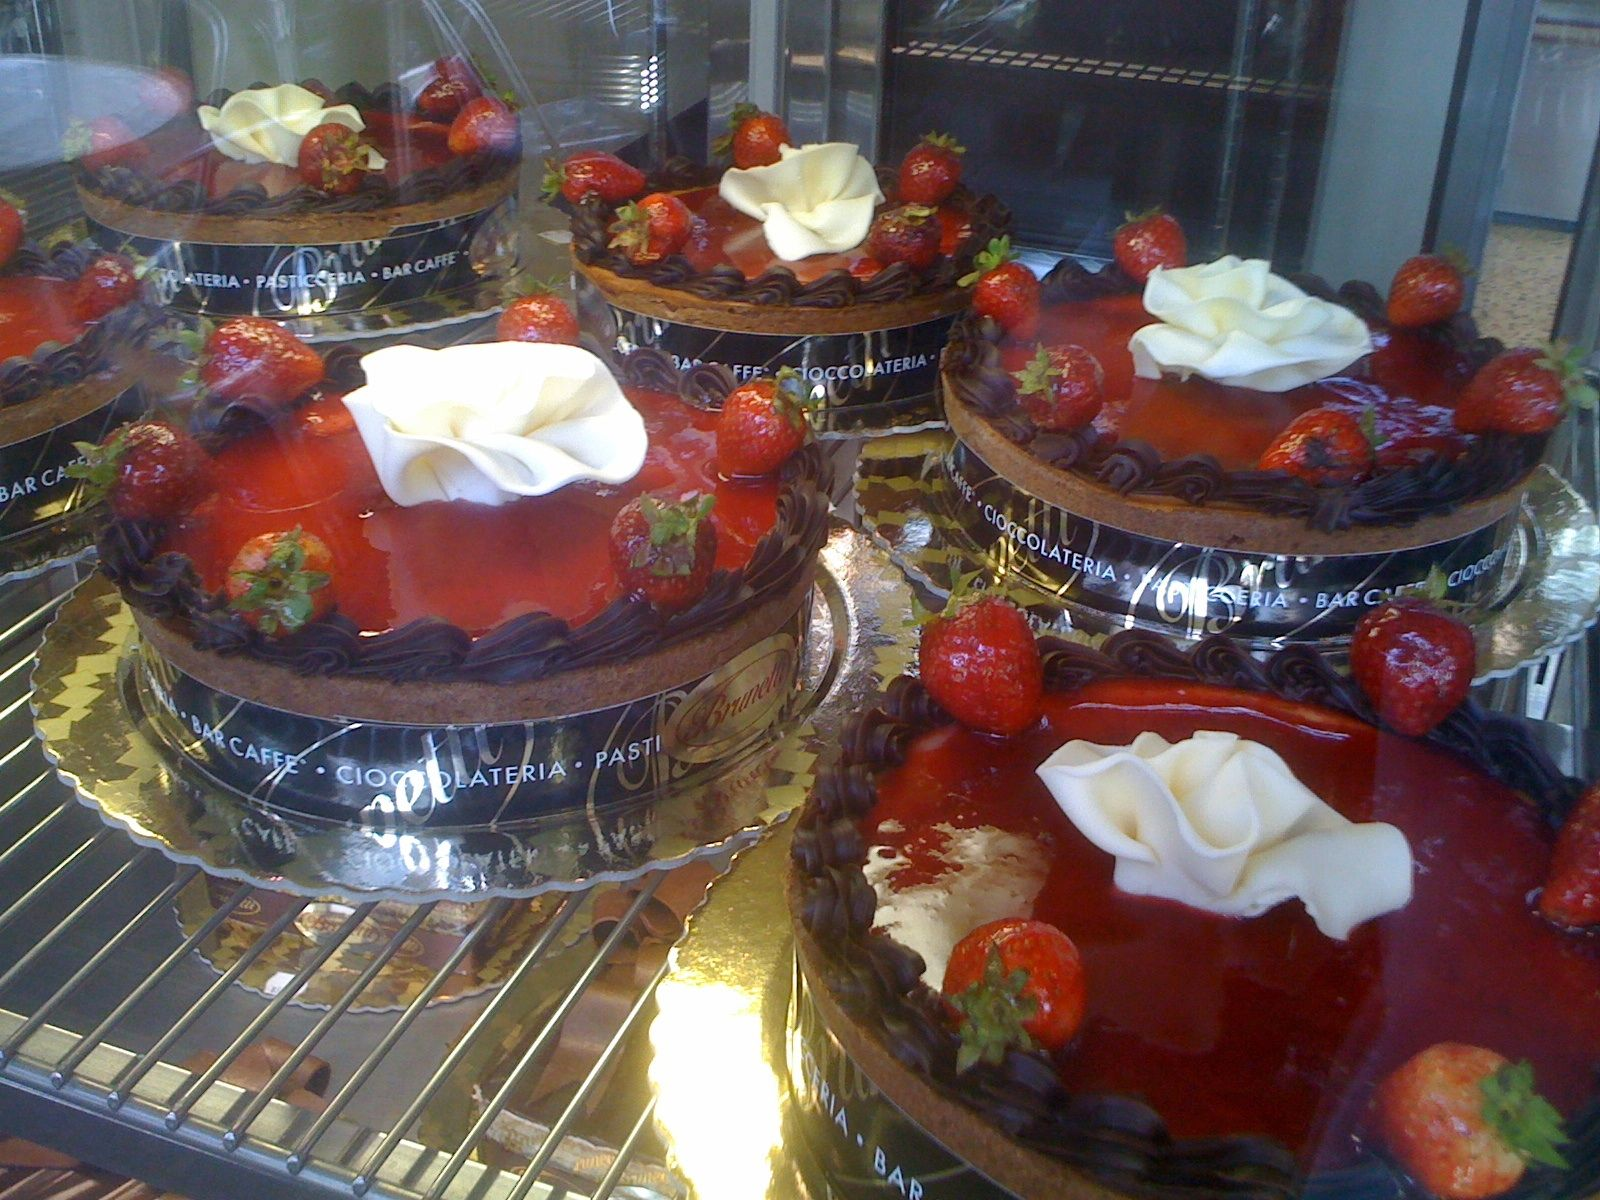 Take a break. Coffee and cakes at Bellini cafe. http://www.bellinicafe.com.au/ Picture taken in Melbourne Australia.